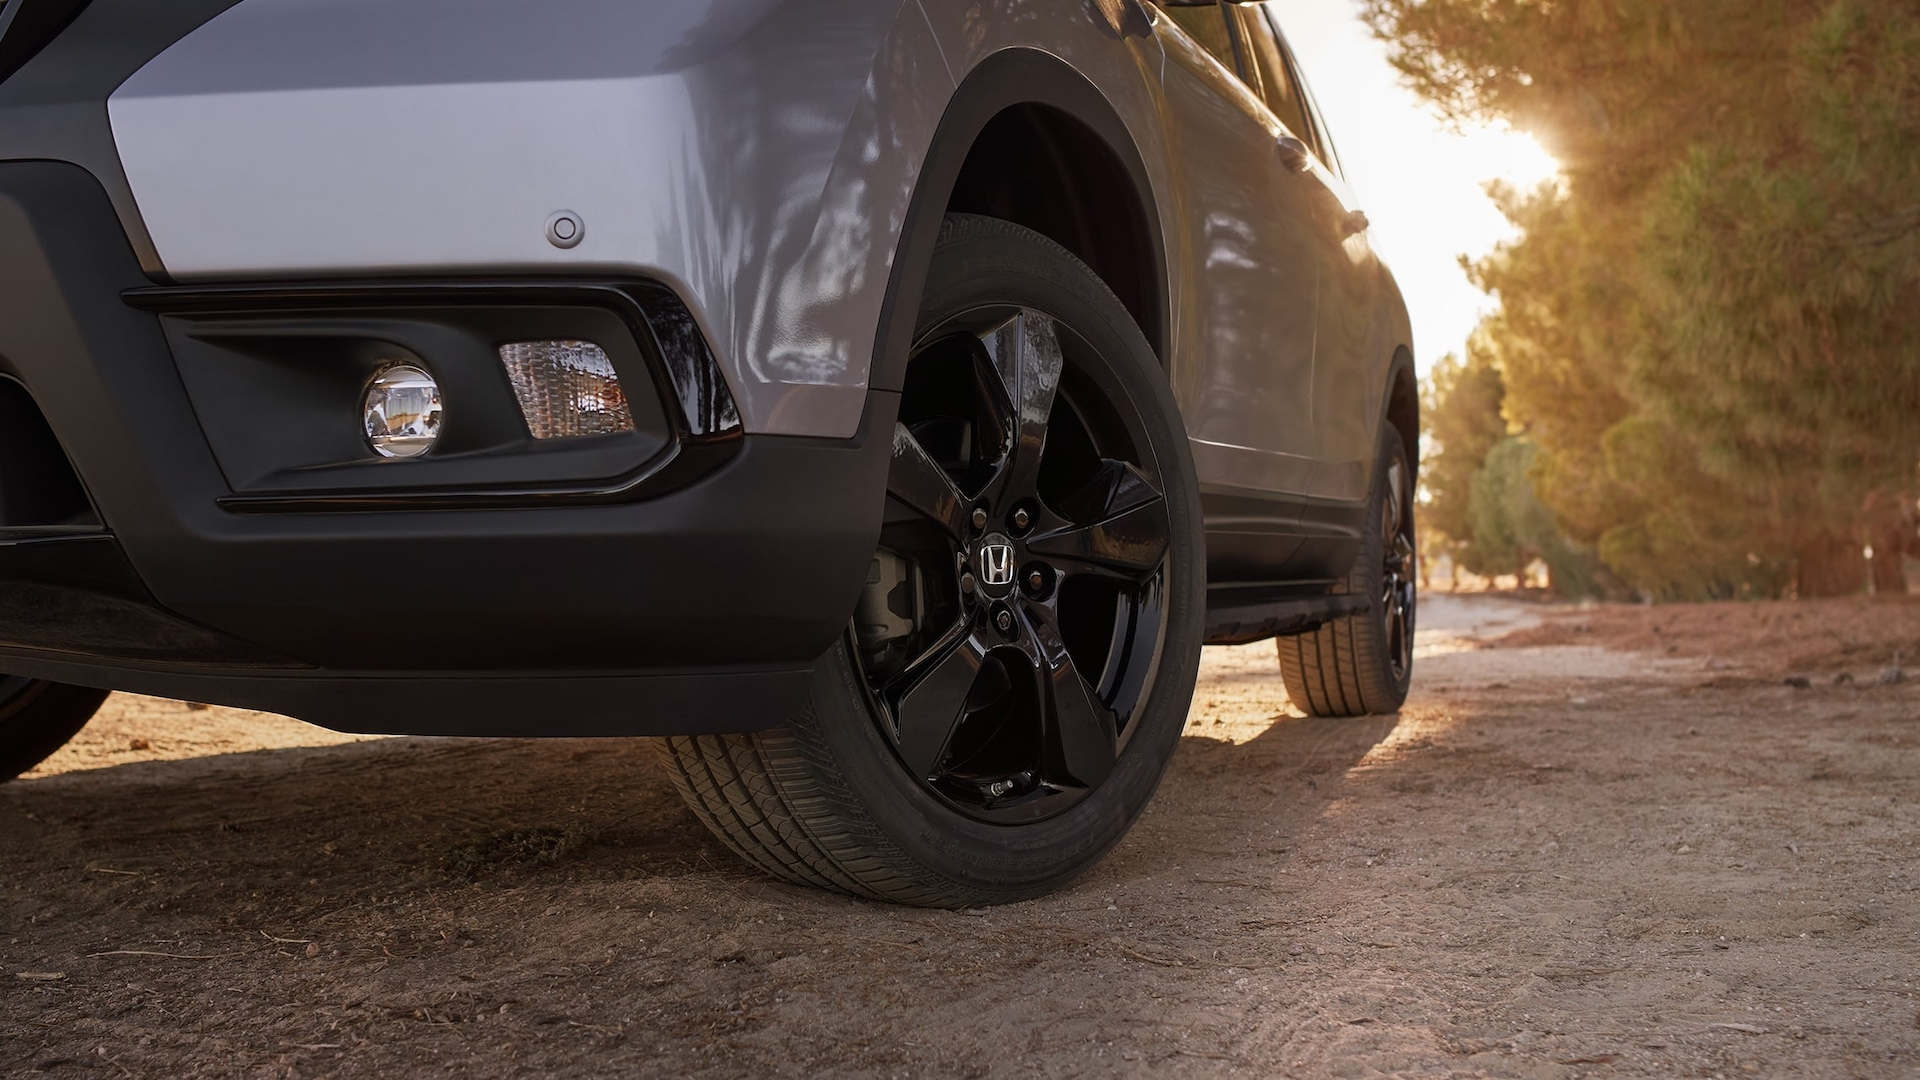 20-inch black alloy wheels on the 2019 Honda Passport Elite, in Lunar Silver Metallic with Honda Genuine Accessories, driving on a rugged road.